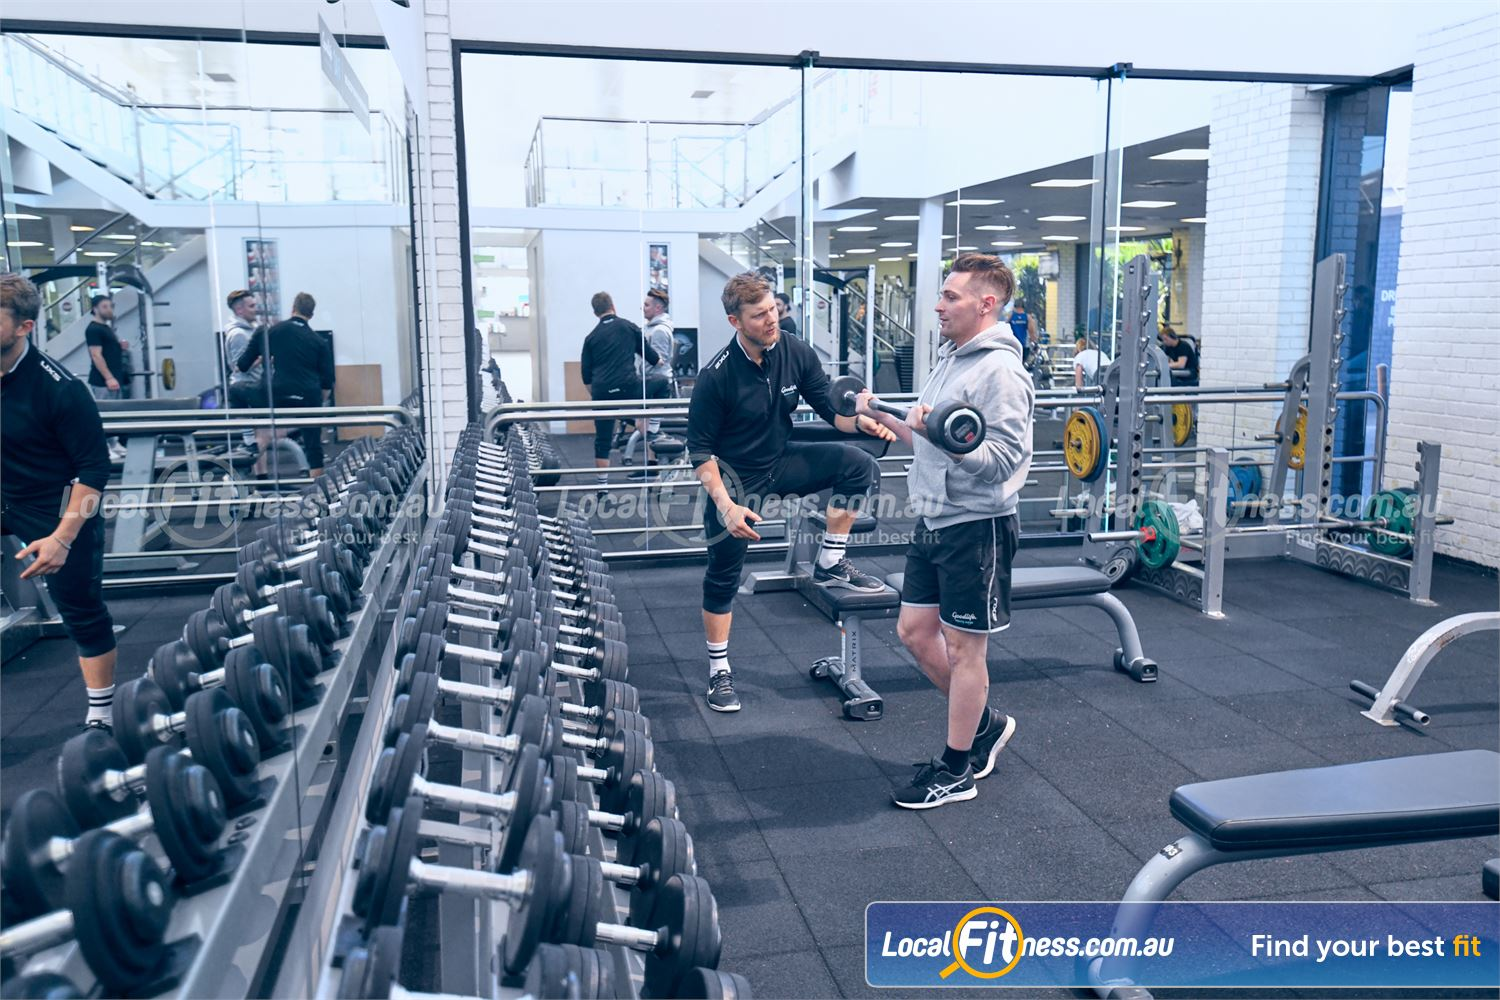 Goodlife Health Clubs Near Ashwood Fully range of free-weights includes dumbbells, barbells, benches and more.